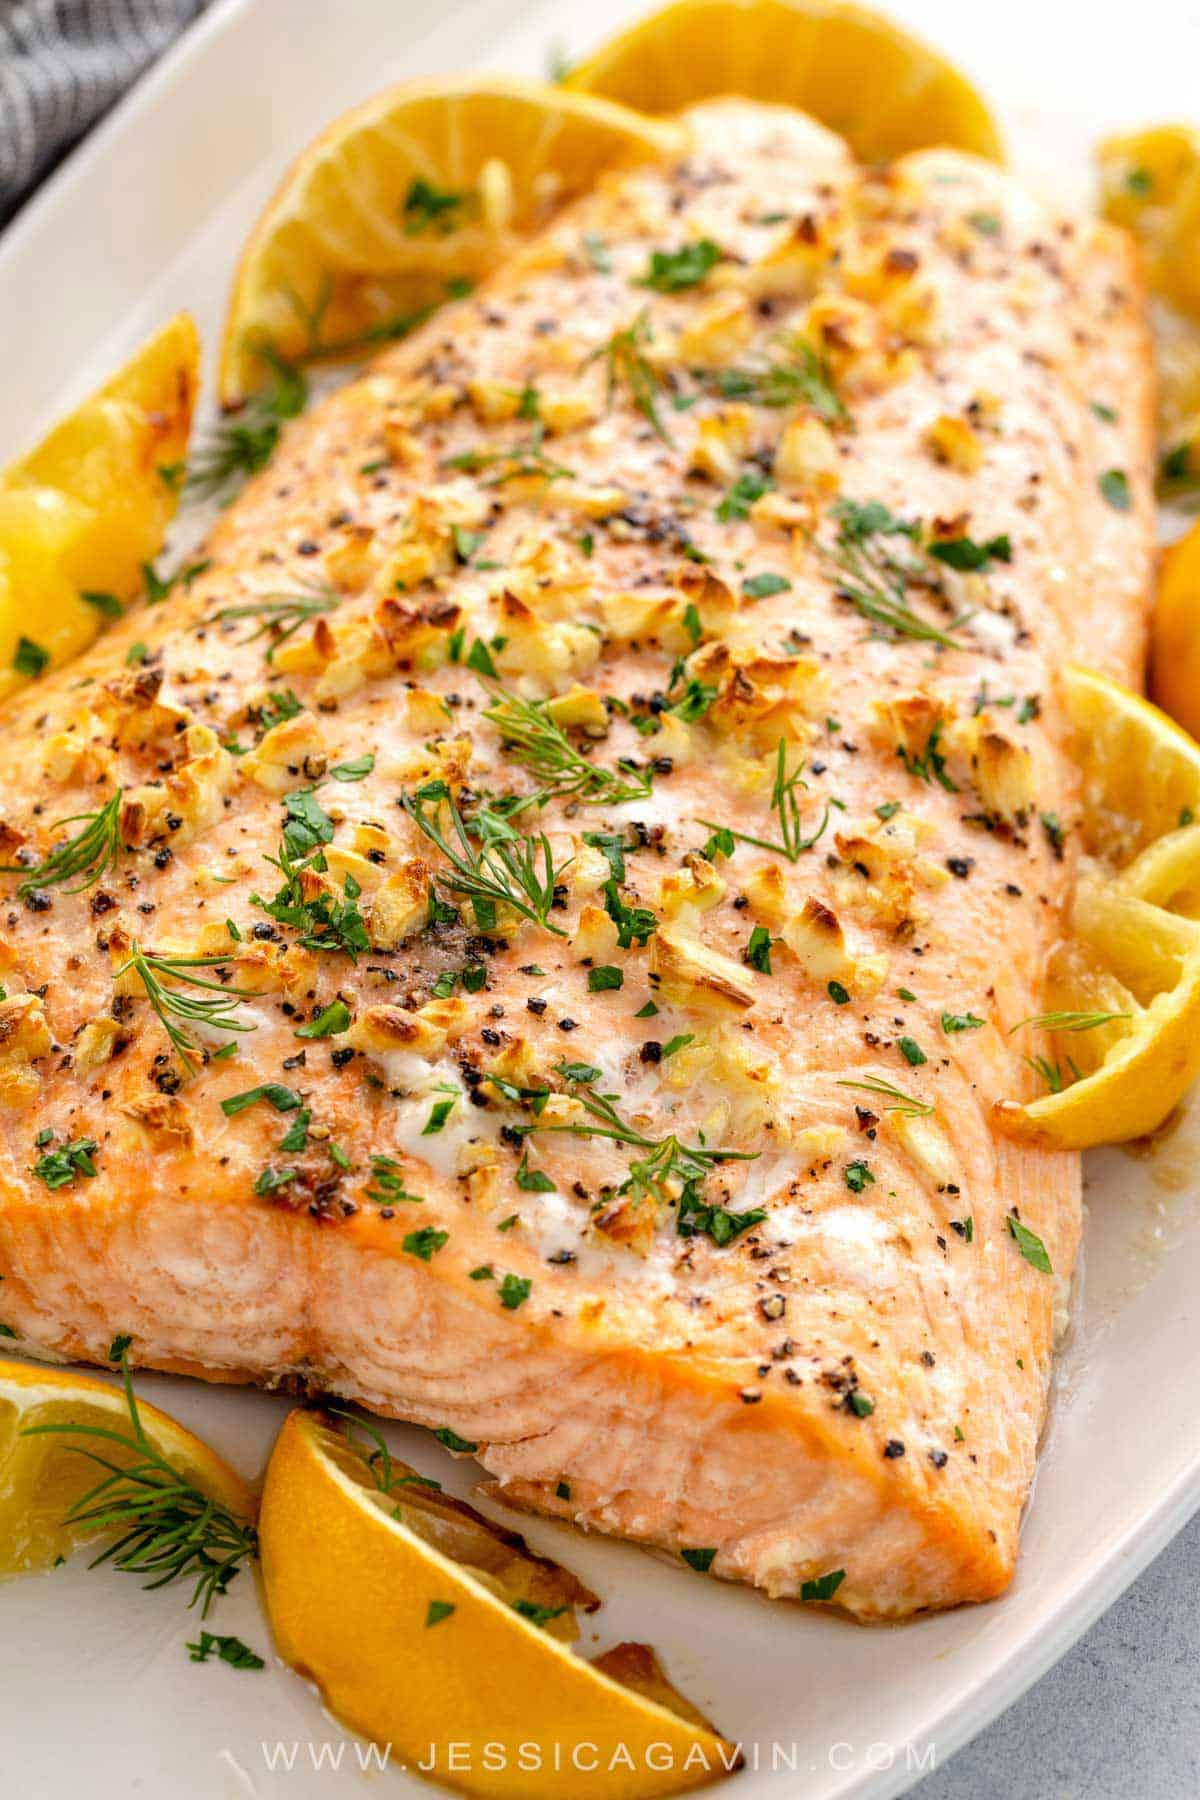 Baked salmon recipe seasoned with garlic, roasted lemons, and fresh herbs. A healthy family dinner ready in just 30 minutes. #bakedsalmon #salmonrecipe #healthyrecipes